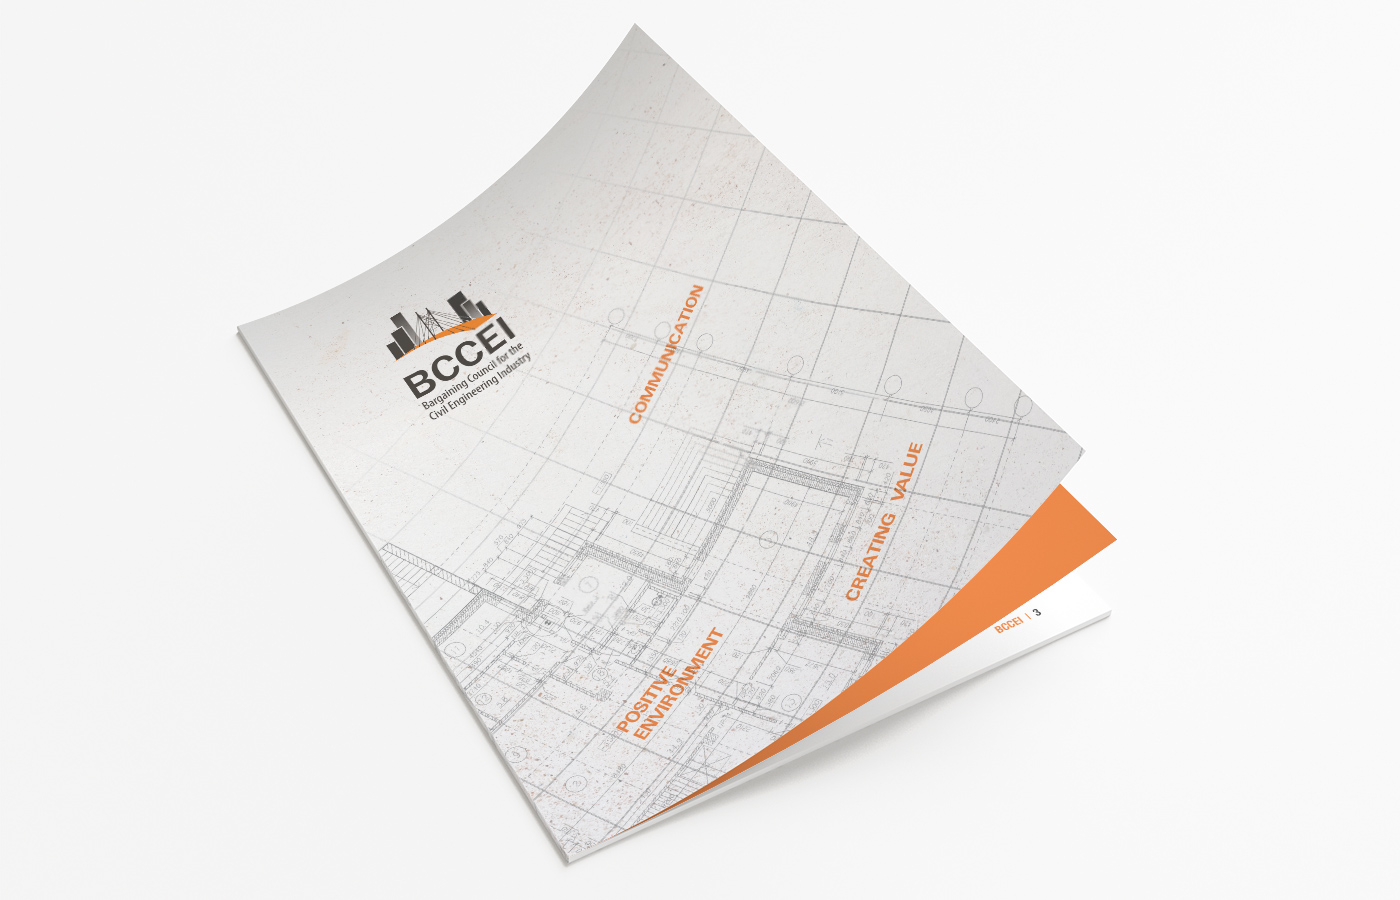 BCCEI Annual Report Design